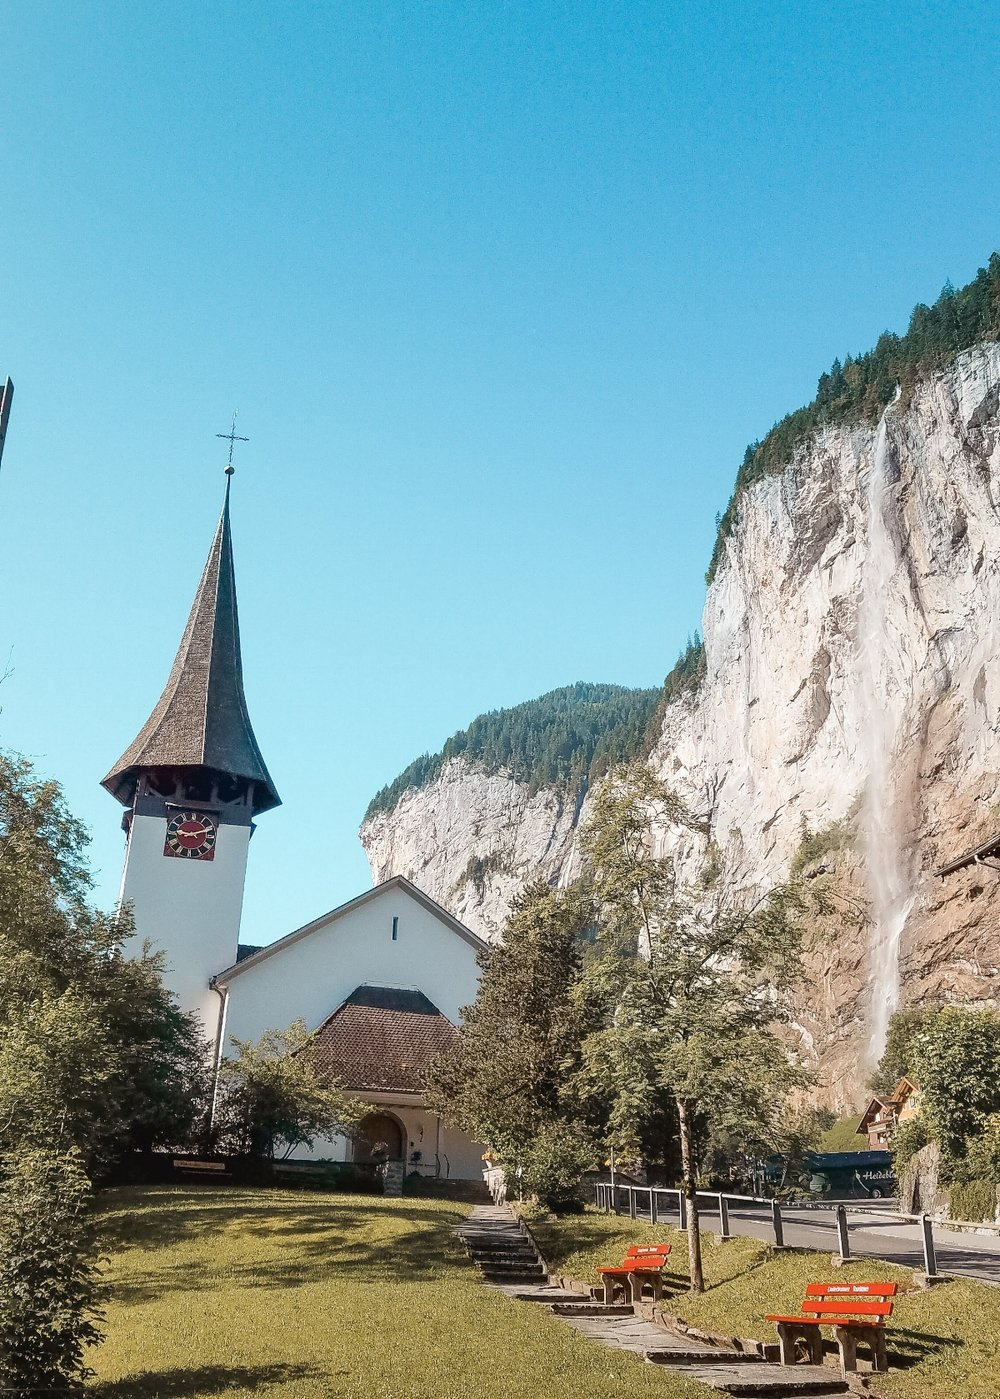 The village of Lauterbrunnen in Switzerland is known for its tall waterfall and white church with a steeple.